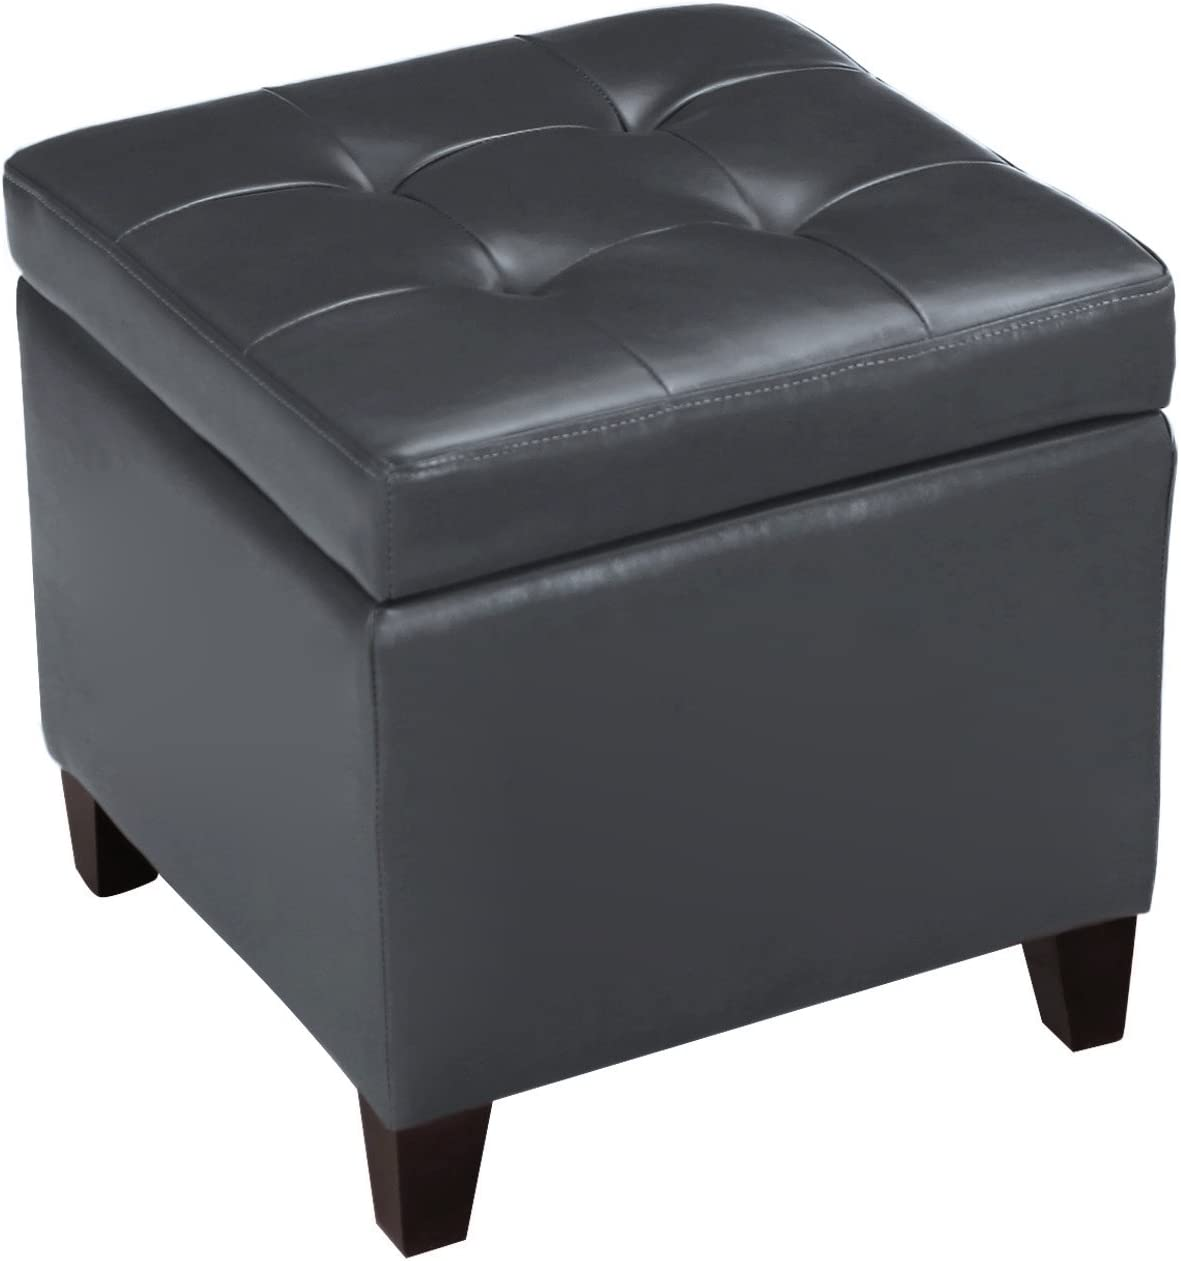 Decent Home 18x18 Max 89% OFF Cheap mail order shopping Faux-Leather Square Hinge with Storage Ottoman